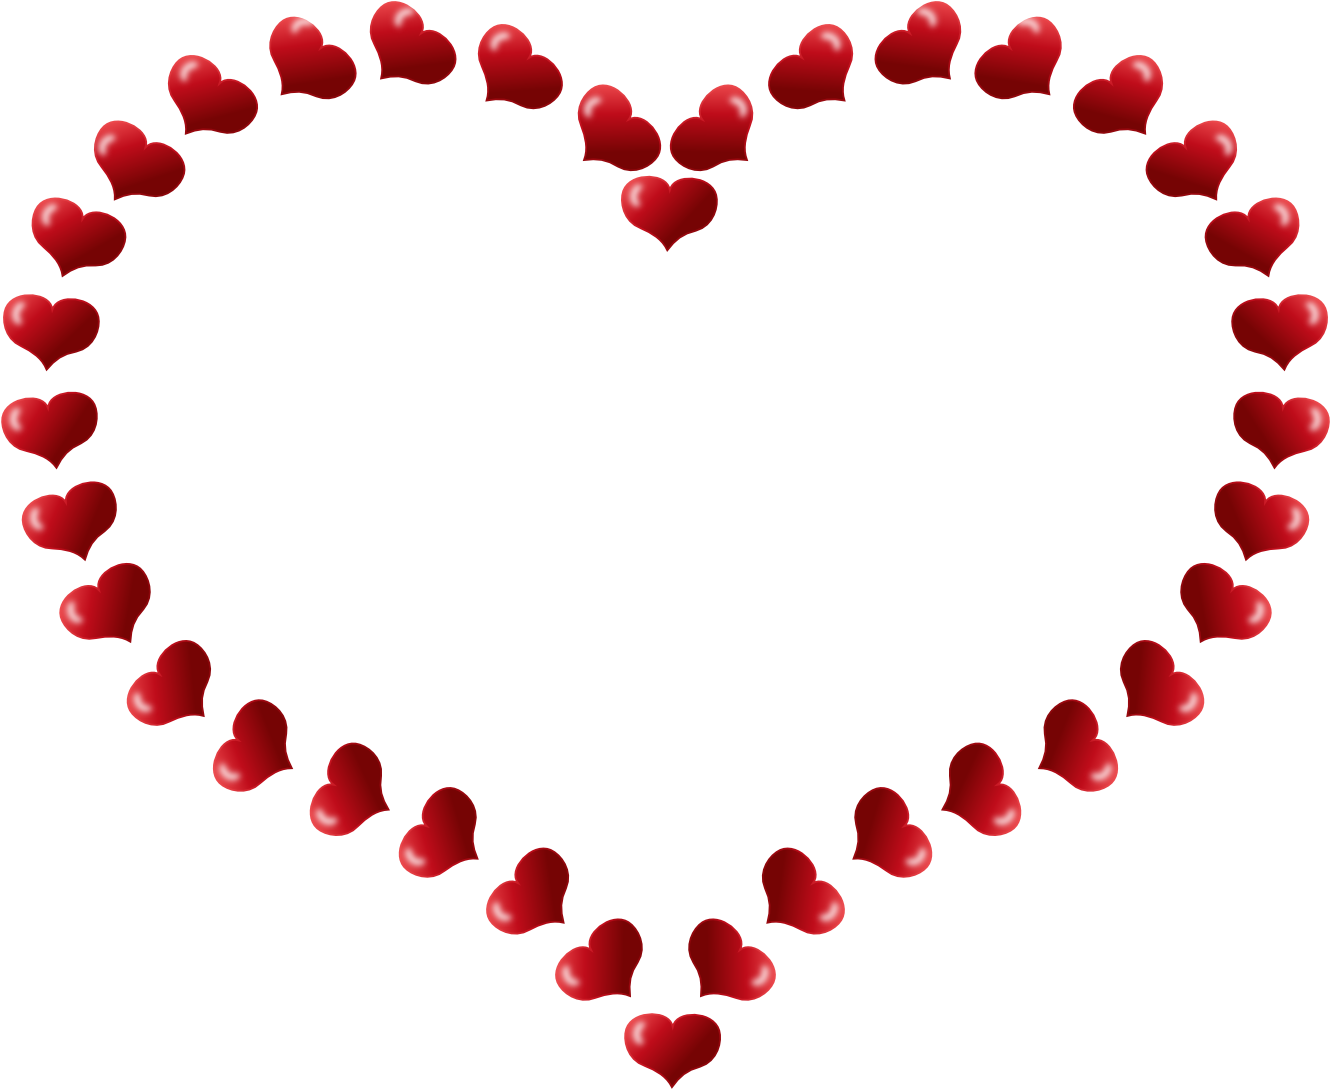 Heart border png hd. Hearts clipart science